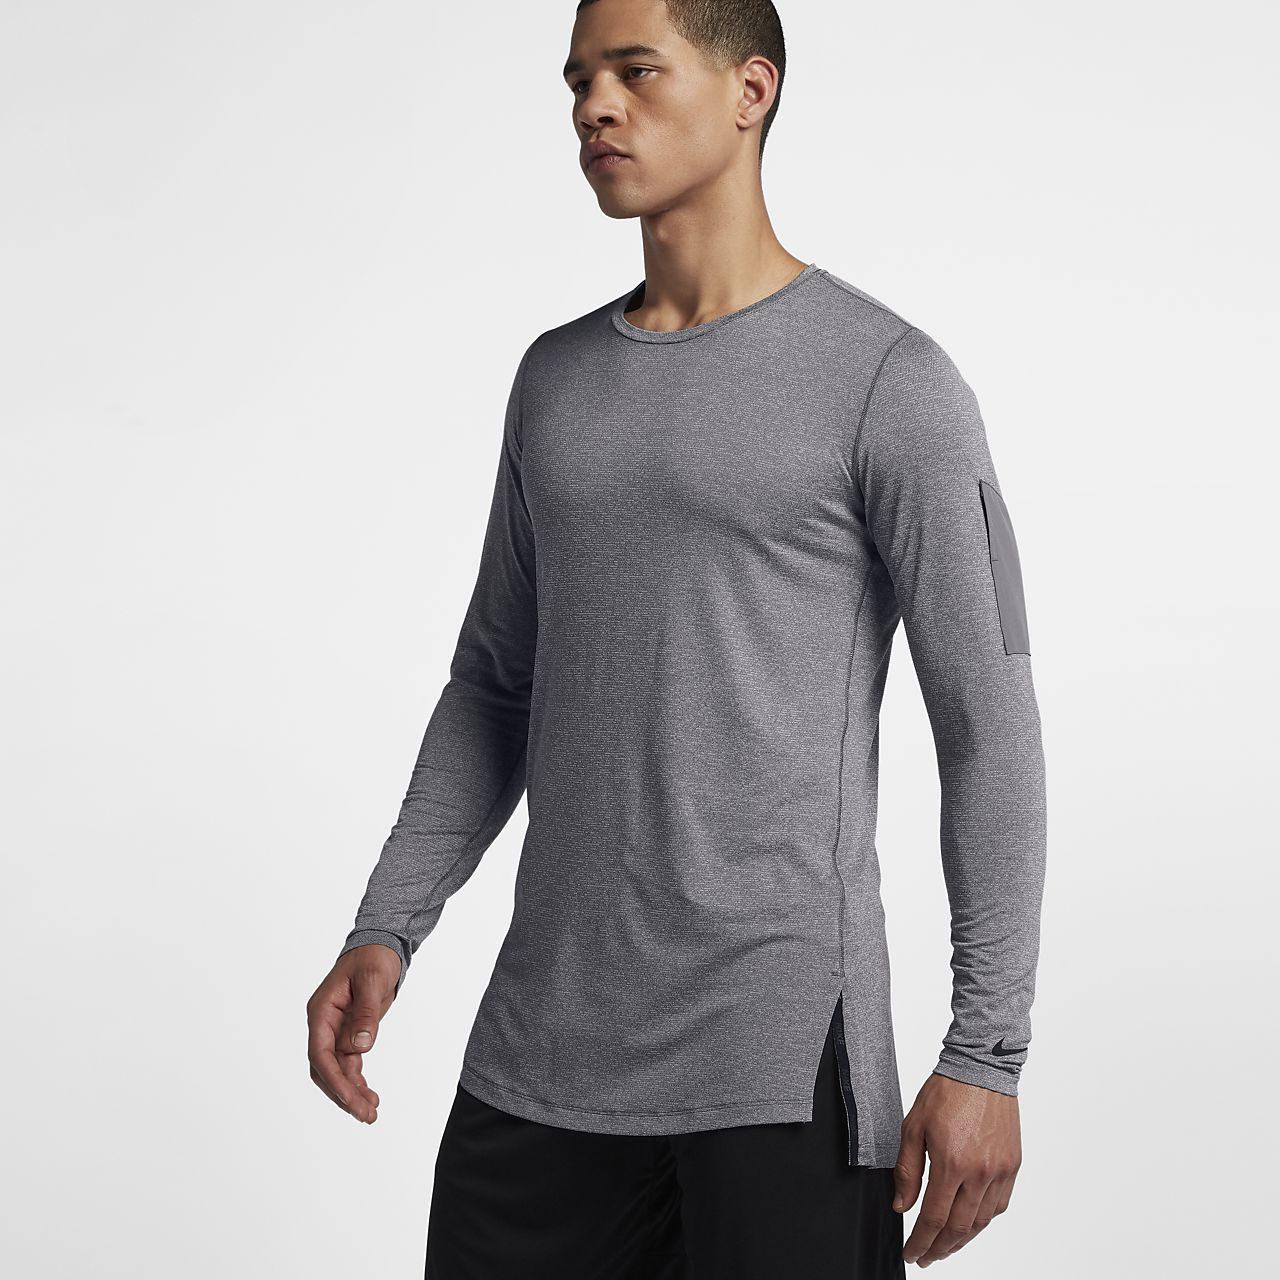 Long Sleeve Fitted Shirts